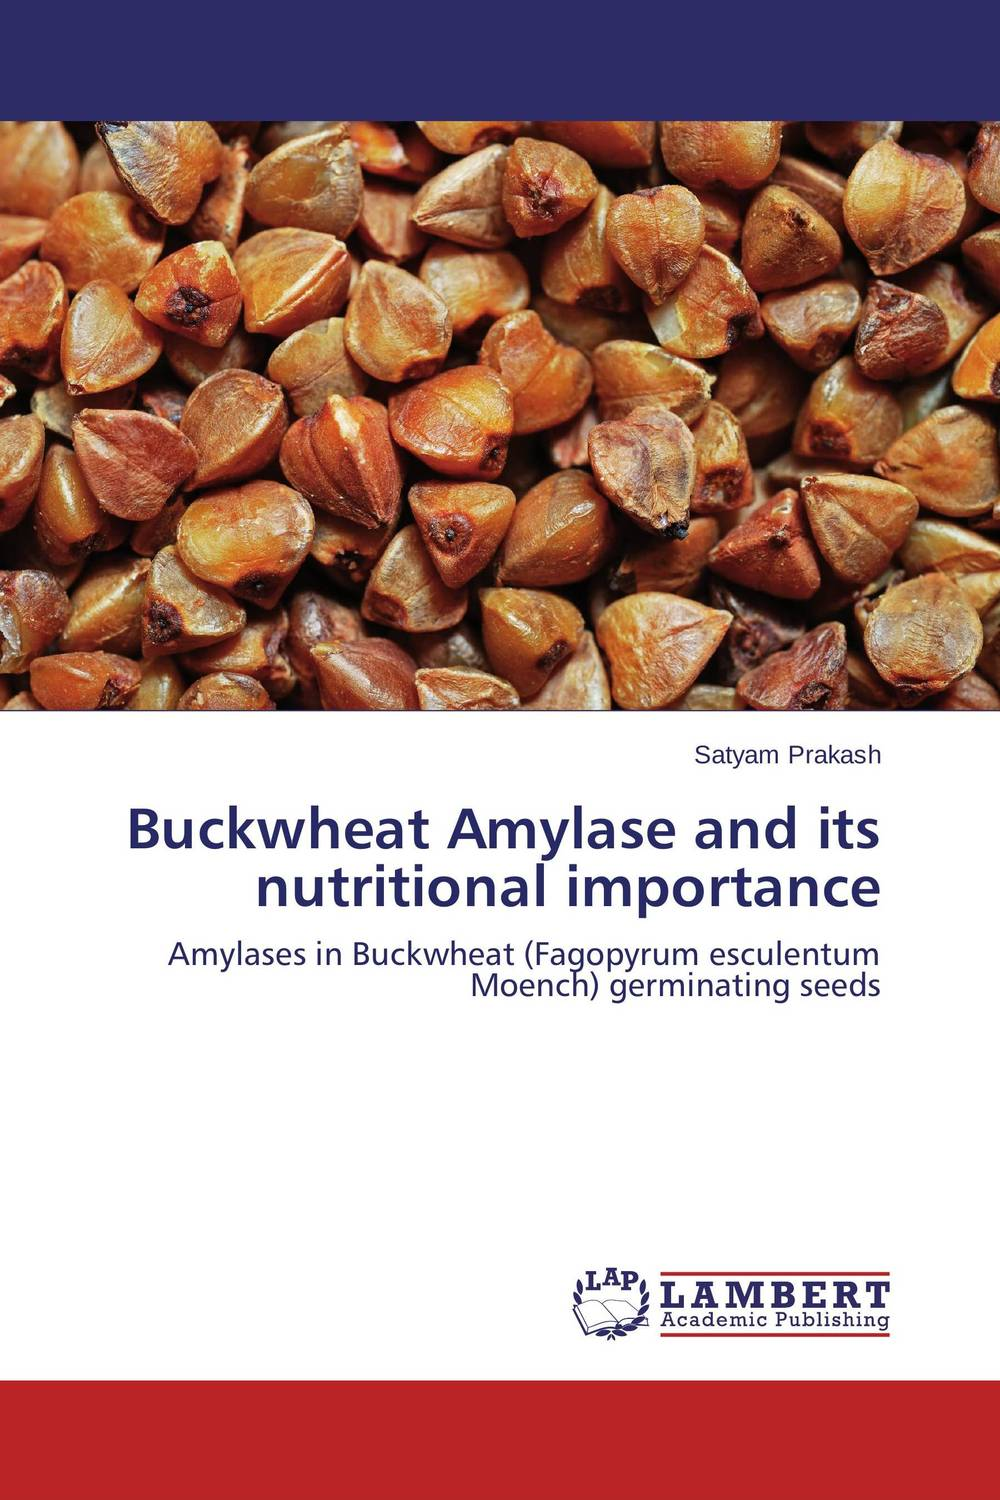 Buckwheat Amylase and its nutritional importance seed dormancy and germination